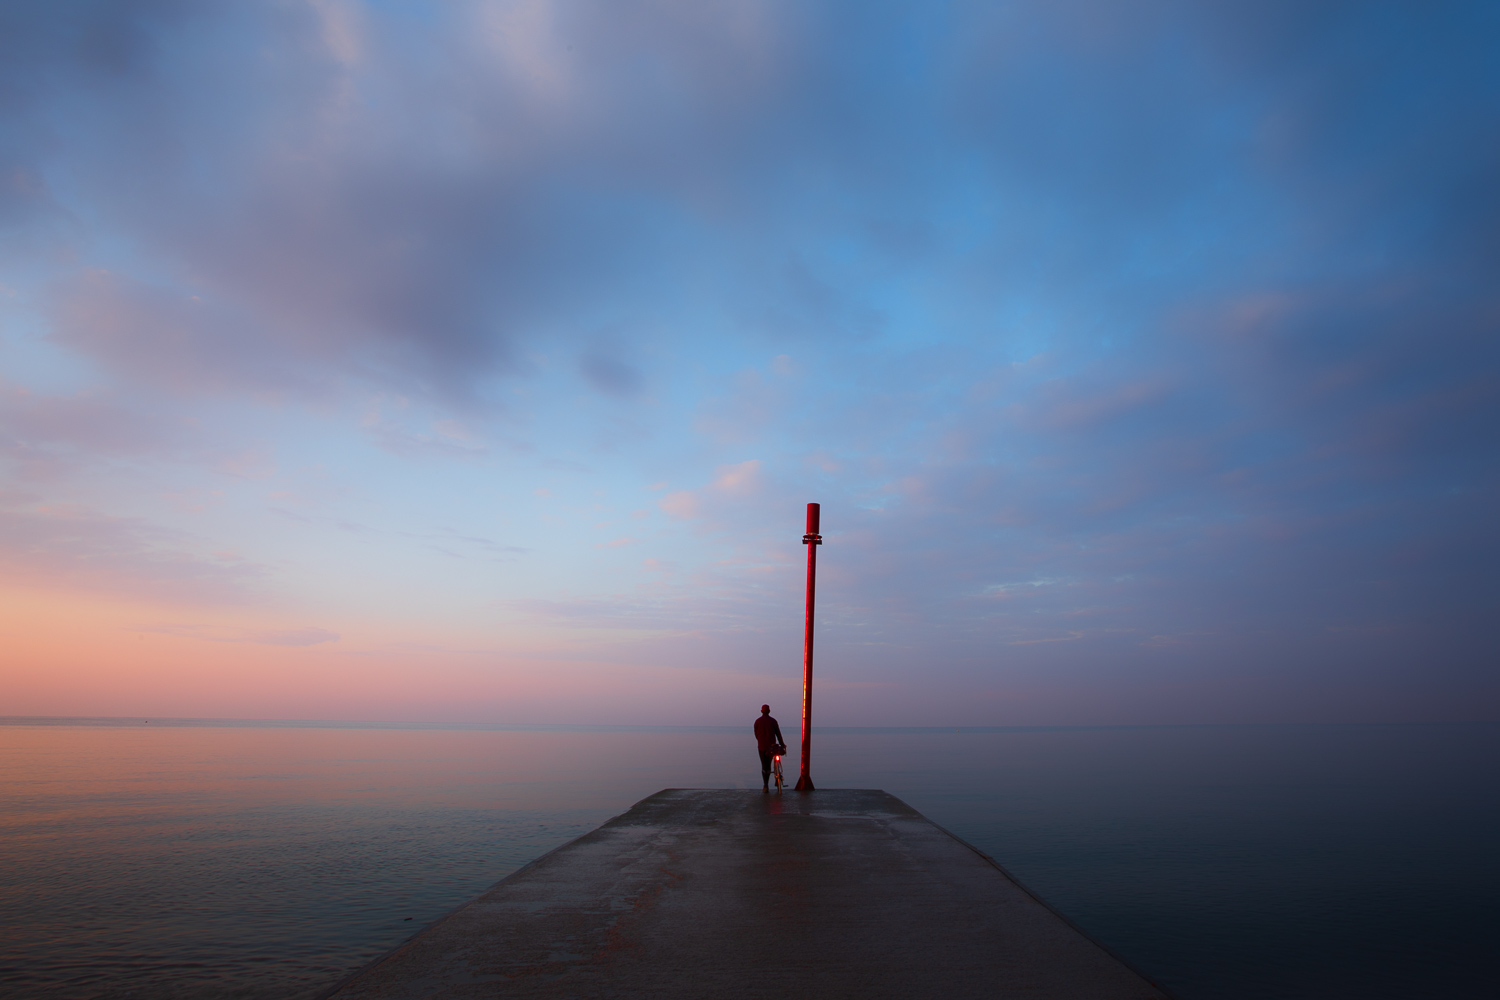 Man with bicycle at end of pier at sunrise